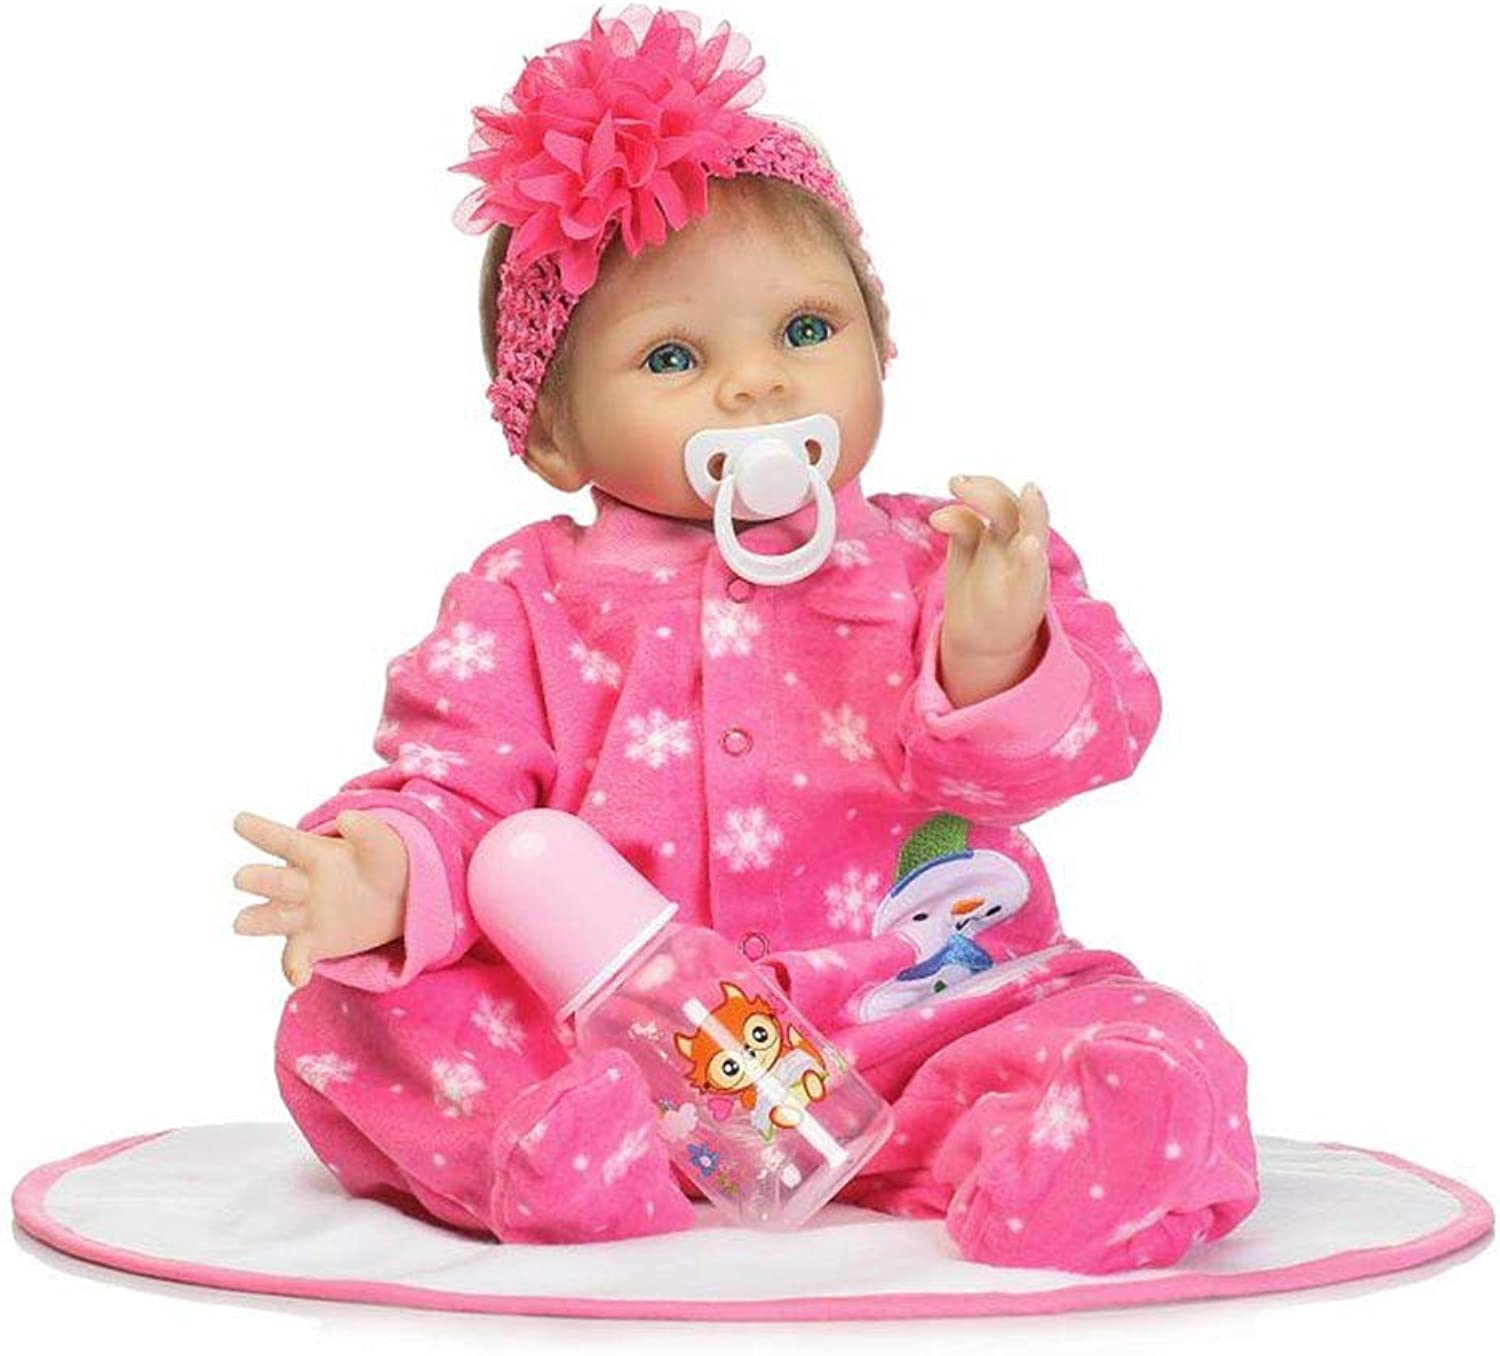 Belegend NPK 55cm Silicone Reborn Doll Set Lifelike Baby Newborn Dolls with Clothes for Kids Playmate